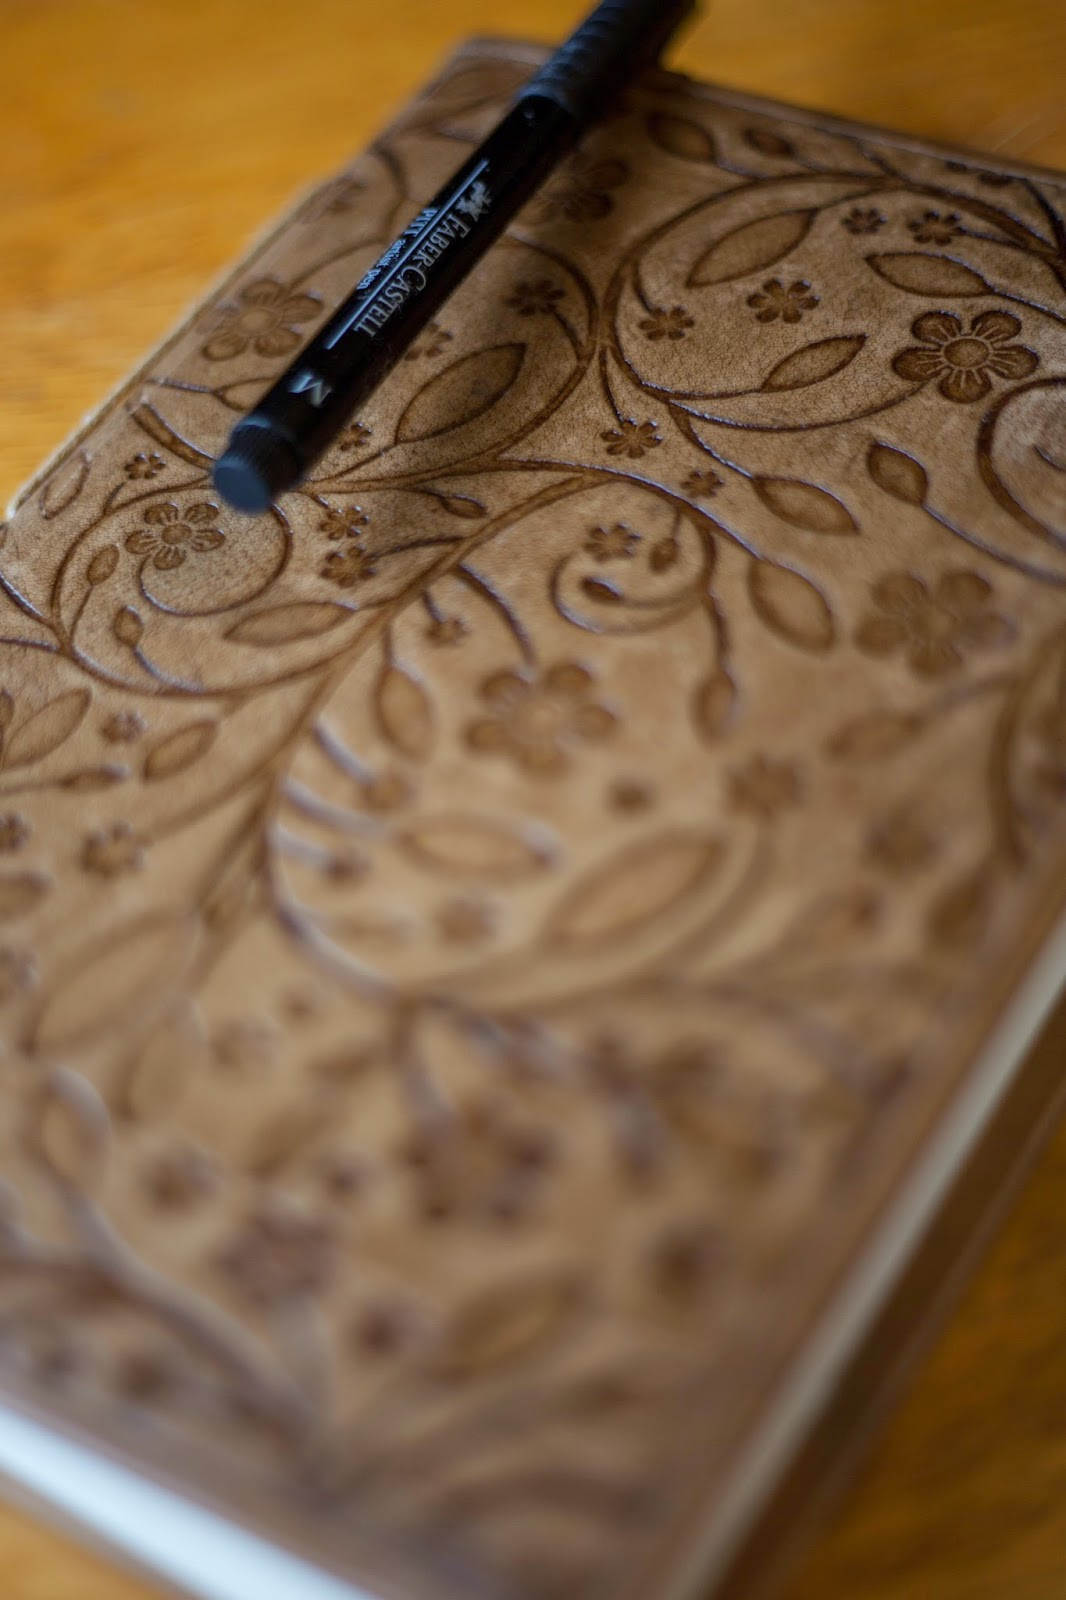 Floral print leather-bound journal